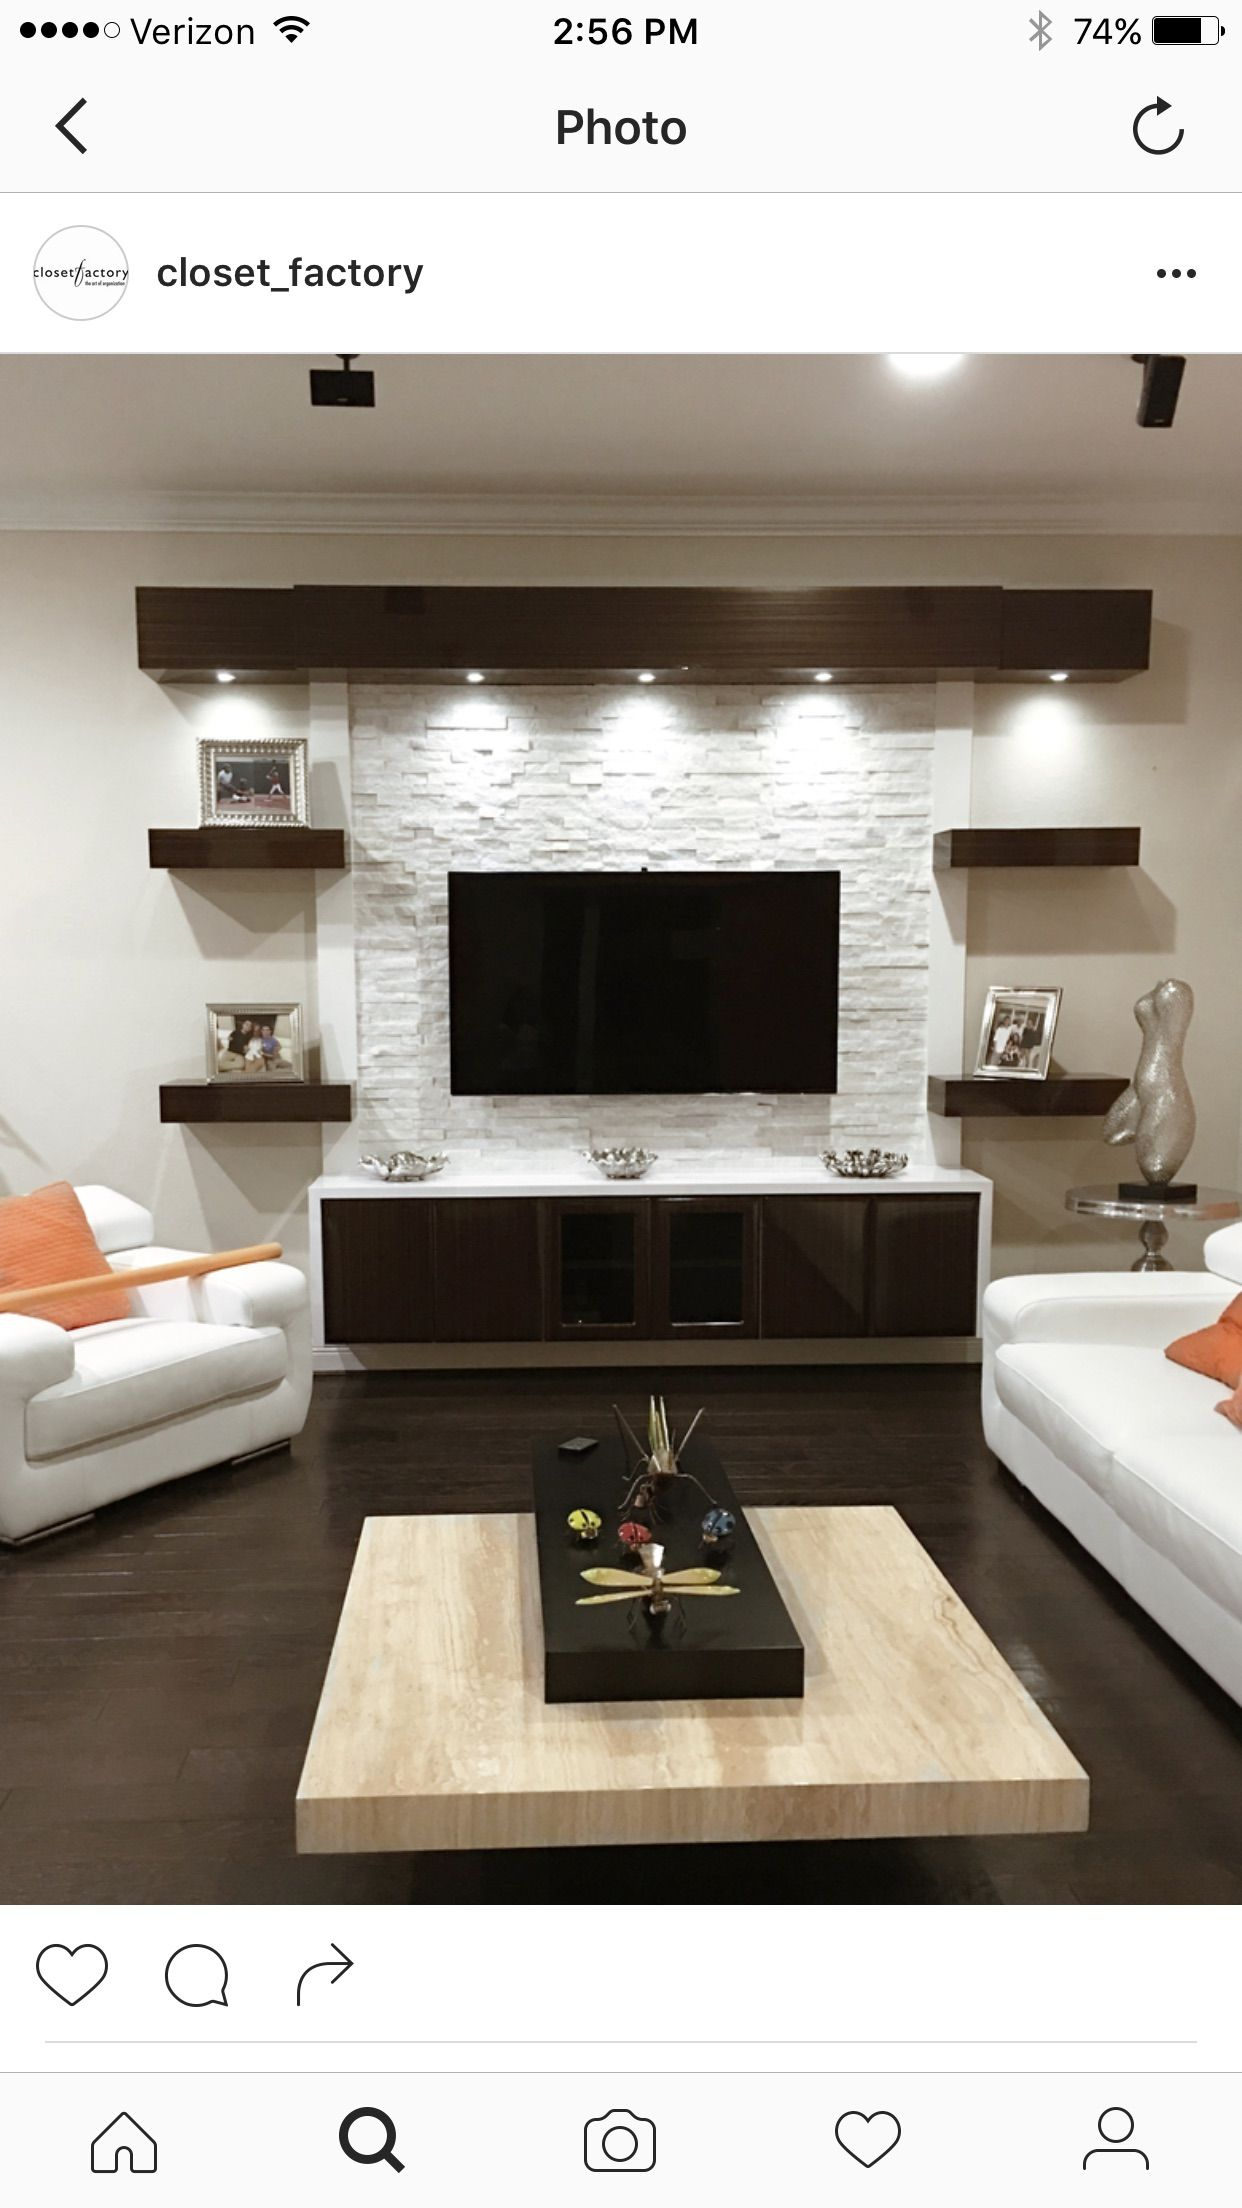 Basement stone entertainment center with ikea cupboards  http://www.shannacreations.ca/blog.html | Decor | Pinterest | Ikea  cupboards, Cupboard and Basements